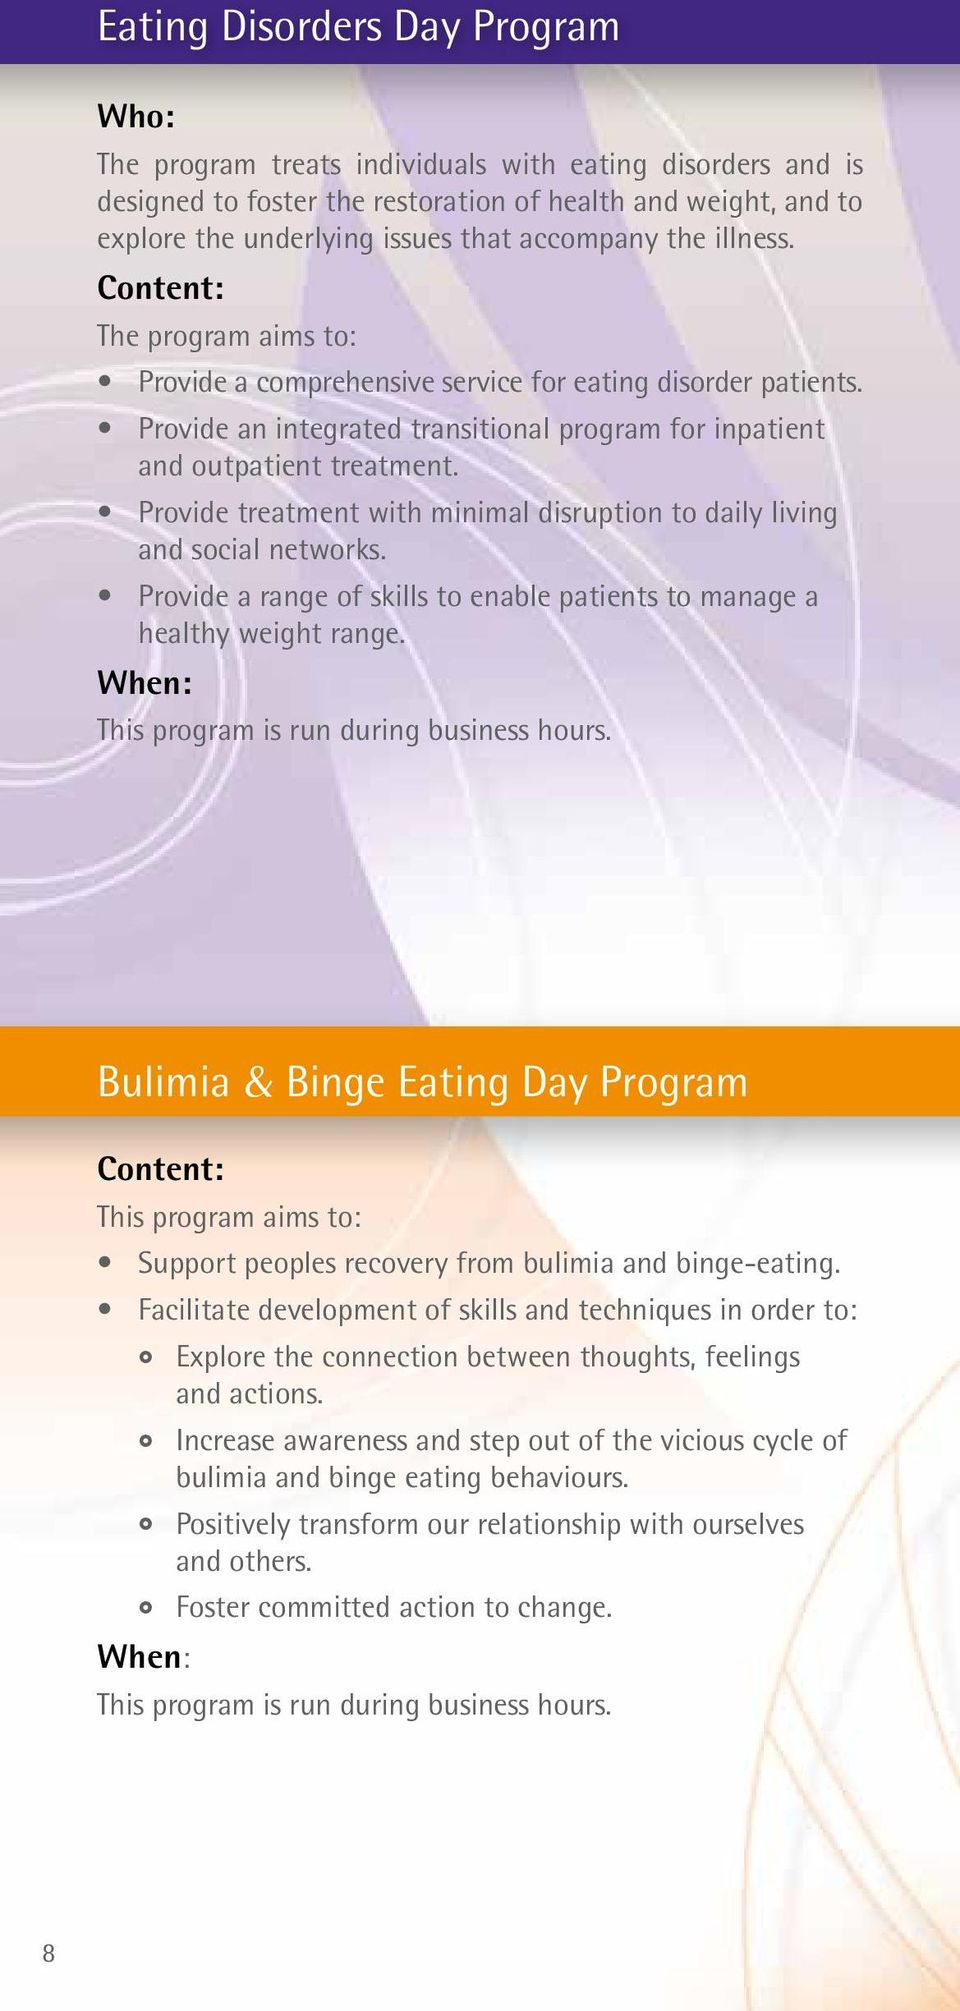 Provide treatment with minimal disruption to daily living and social networks. Provide a range of skills to enable patients to manage a healthy weight range. This program is run during business hours.